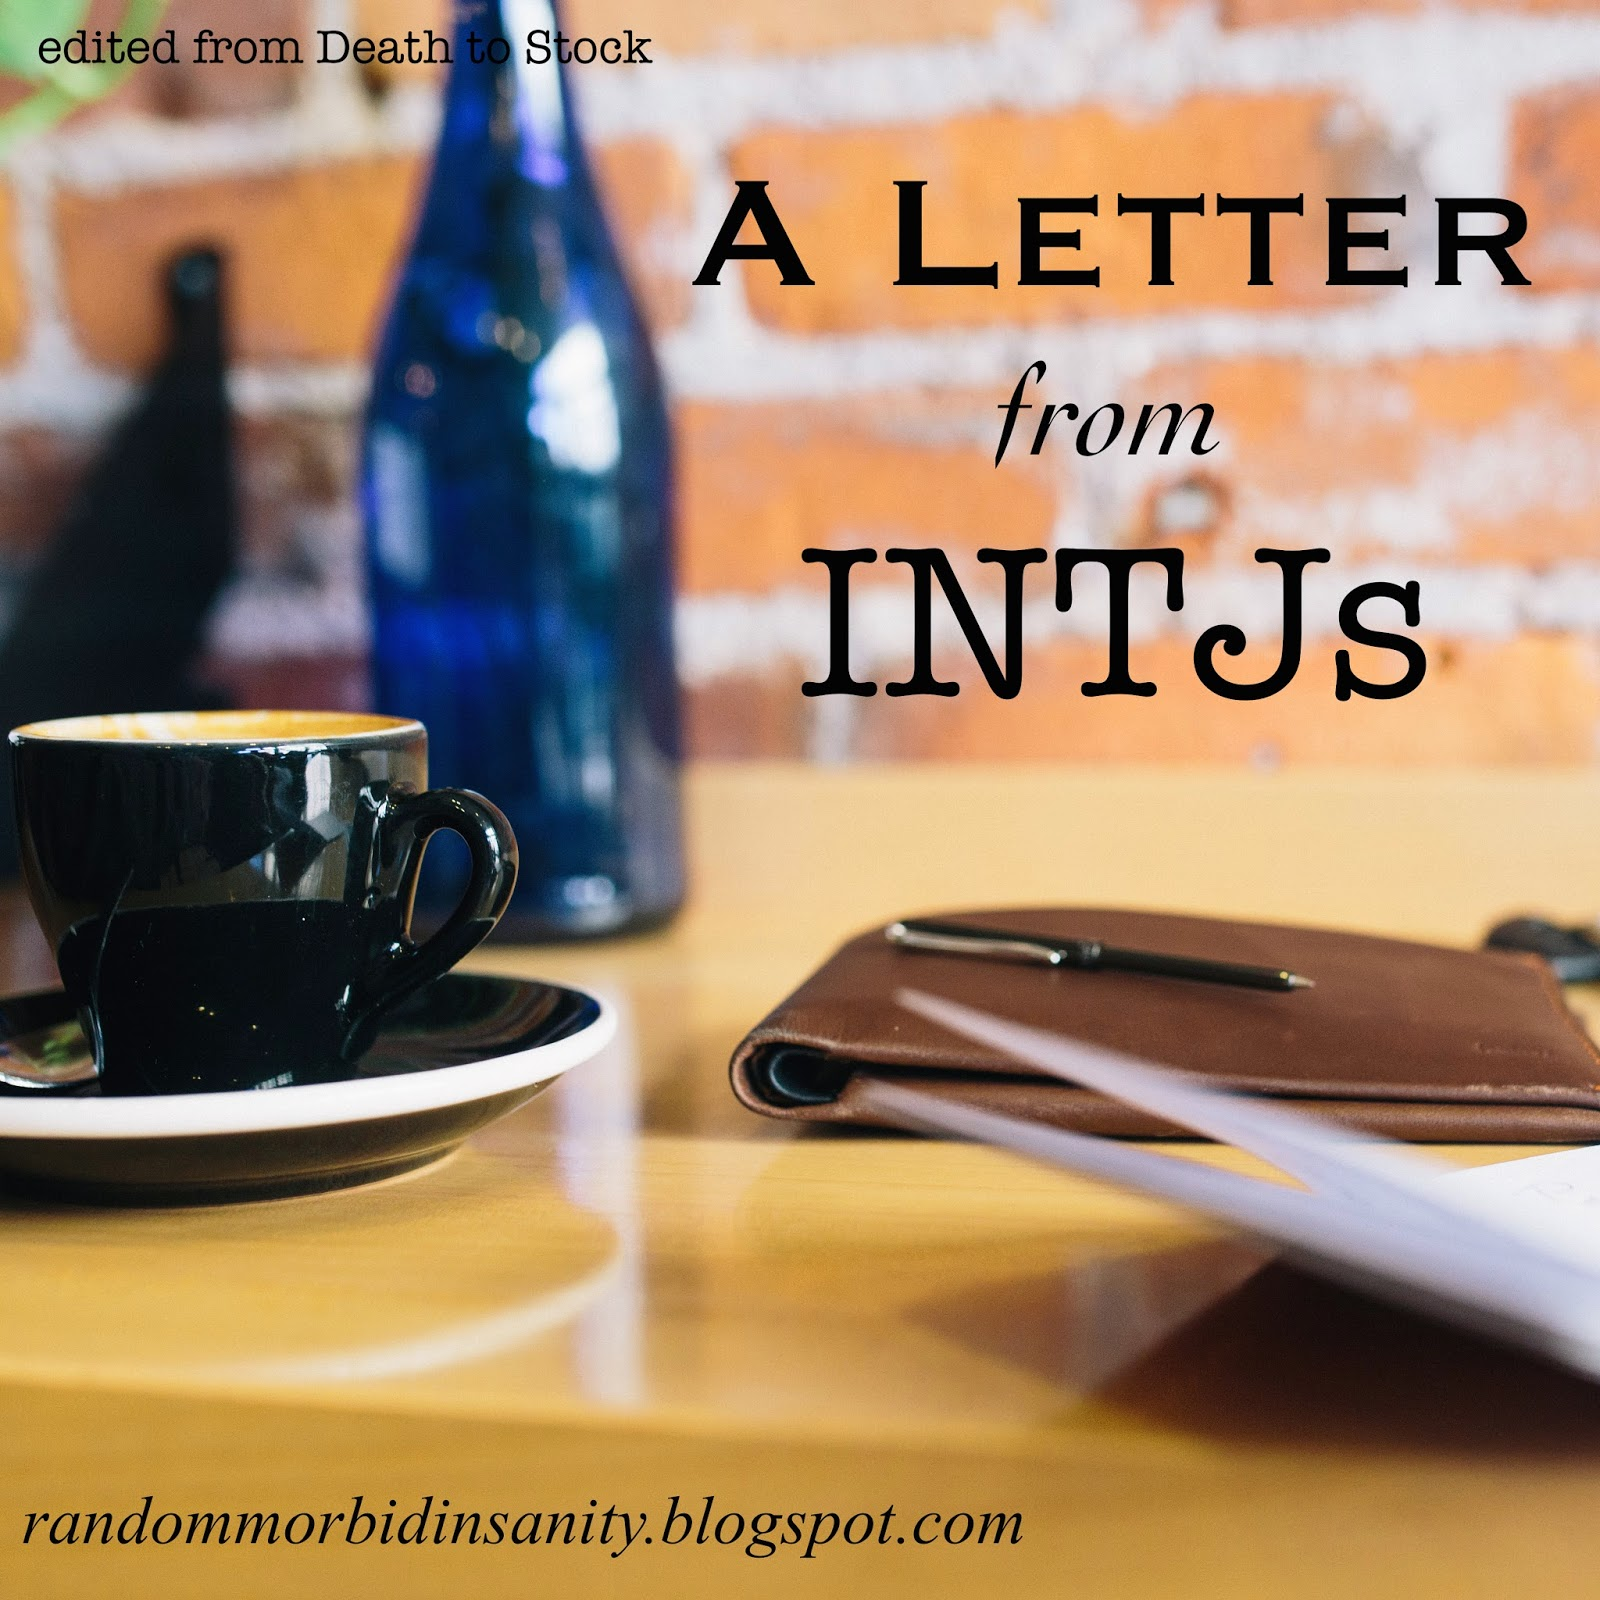 A letter from INTJs